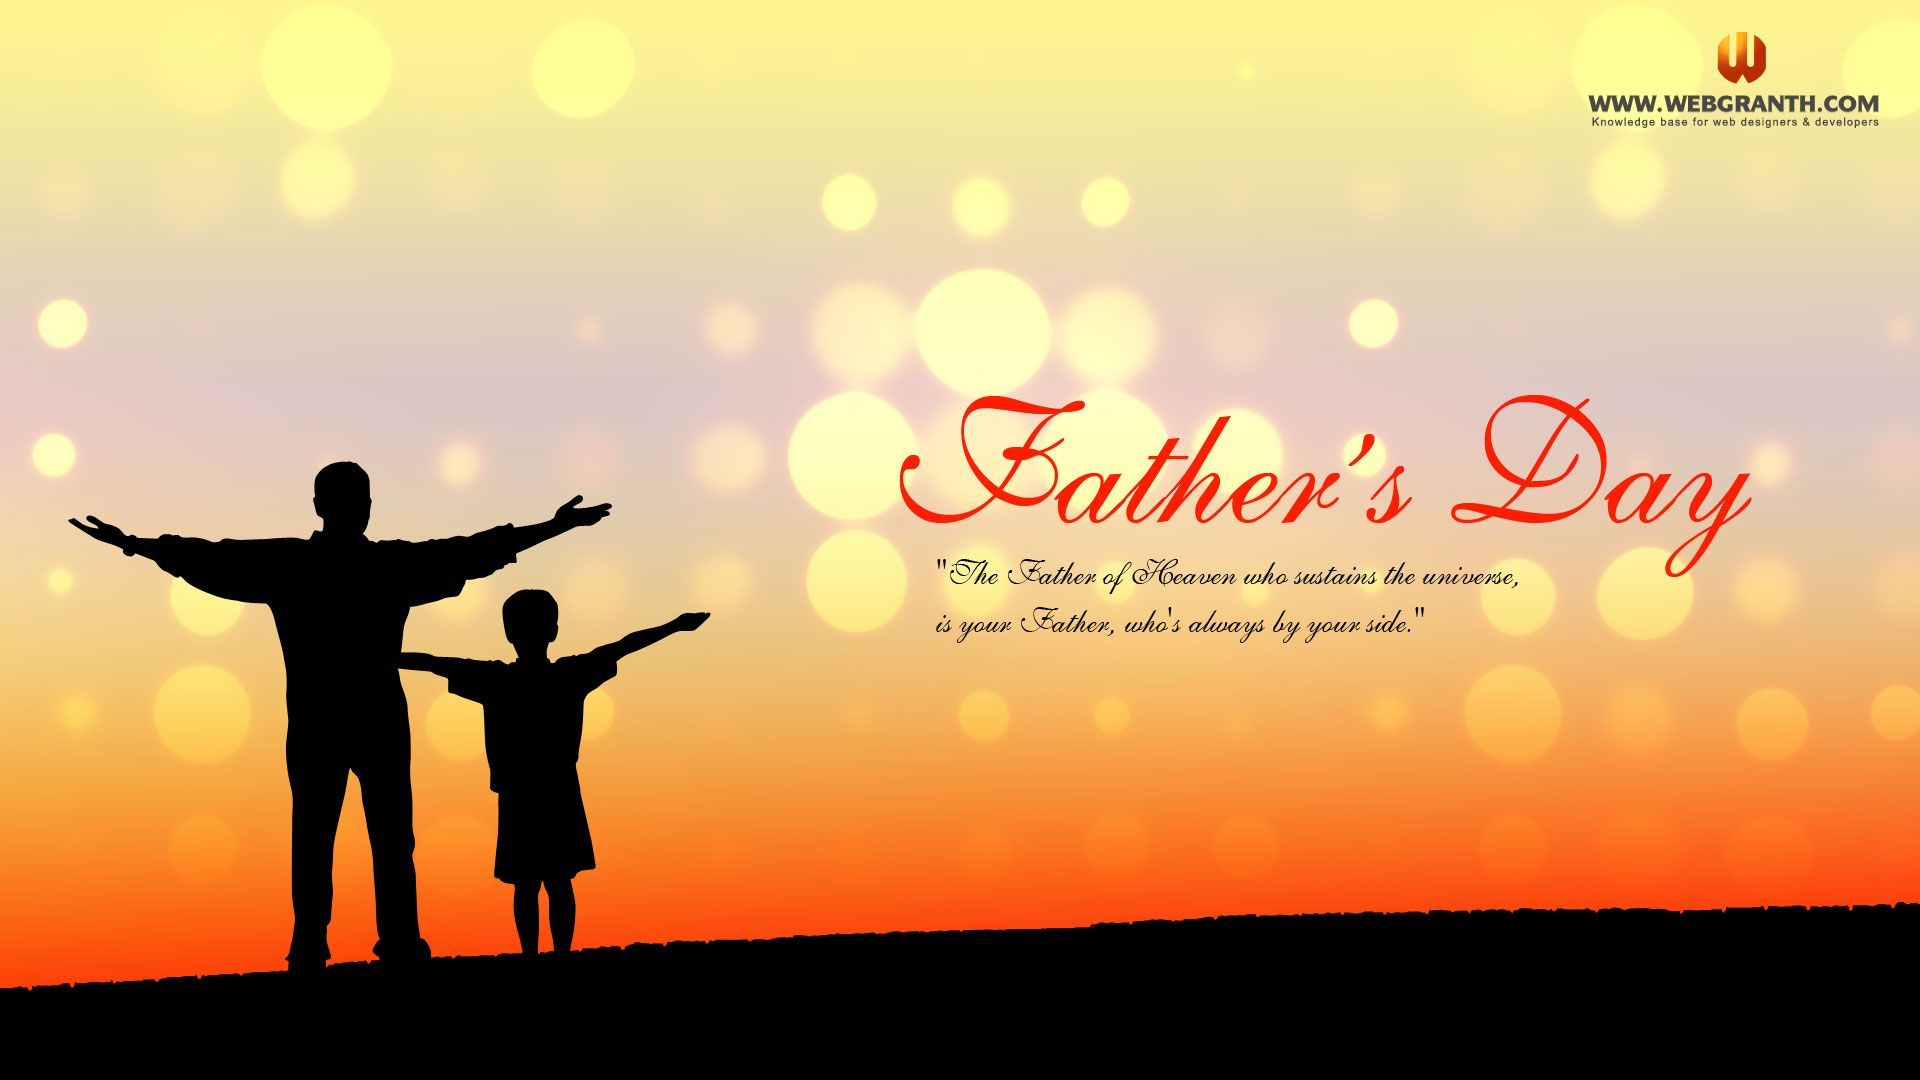 father's day wallpaper - download hd fathers day wallpaper